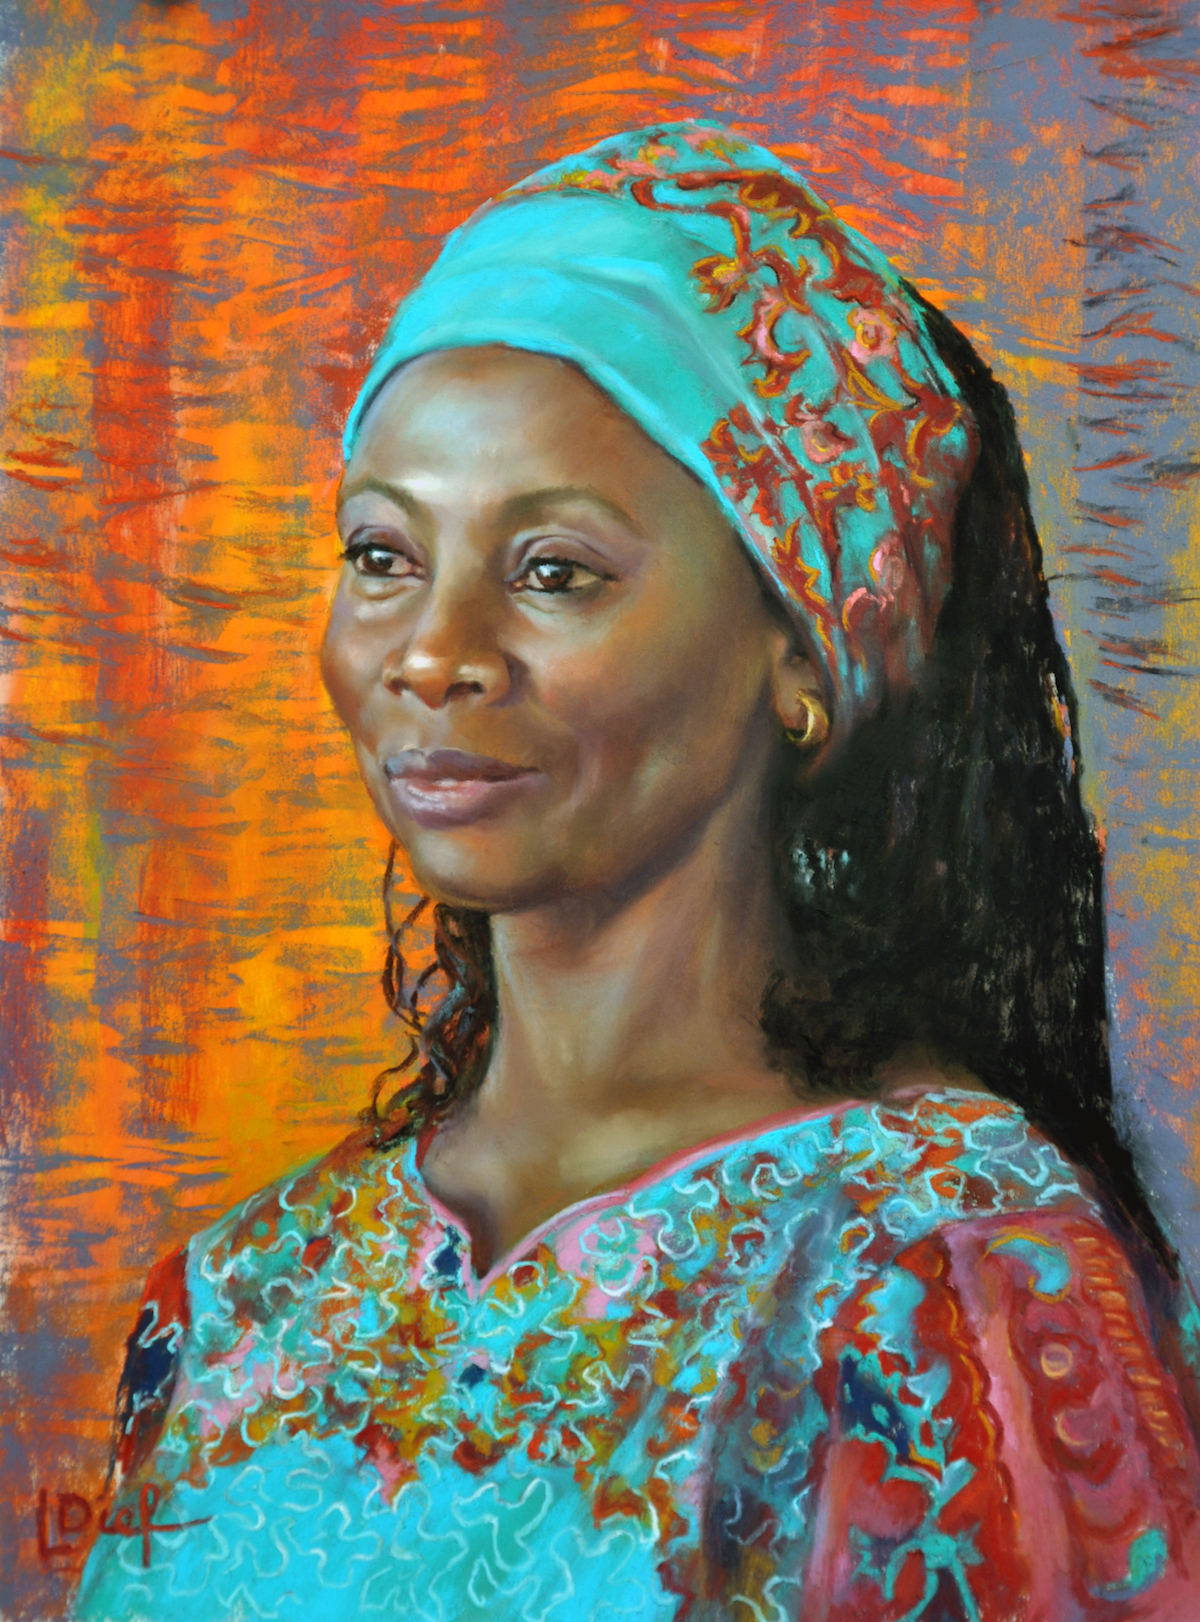 """Lyn Diefenbach, """"Radiant Poise,"""" Dec 2015, Pastel on UART 600, 17 x 13 in. Available. his portrait started as an experiment of underpainting with extremely bright colours. I used reds and oranges which I then had to bring under control. I was in a quandary as to what to do with the background. Somewhere in the source photo I found a scrap of cloth with zebra stripes in its design, Aha! I thought."""